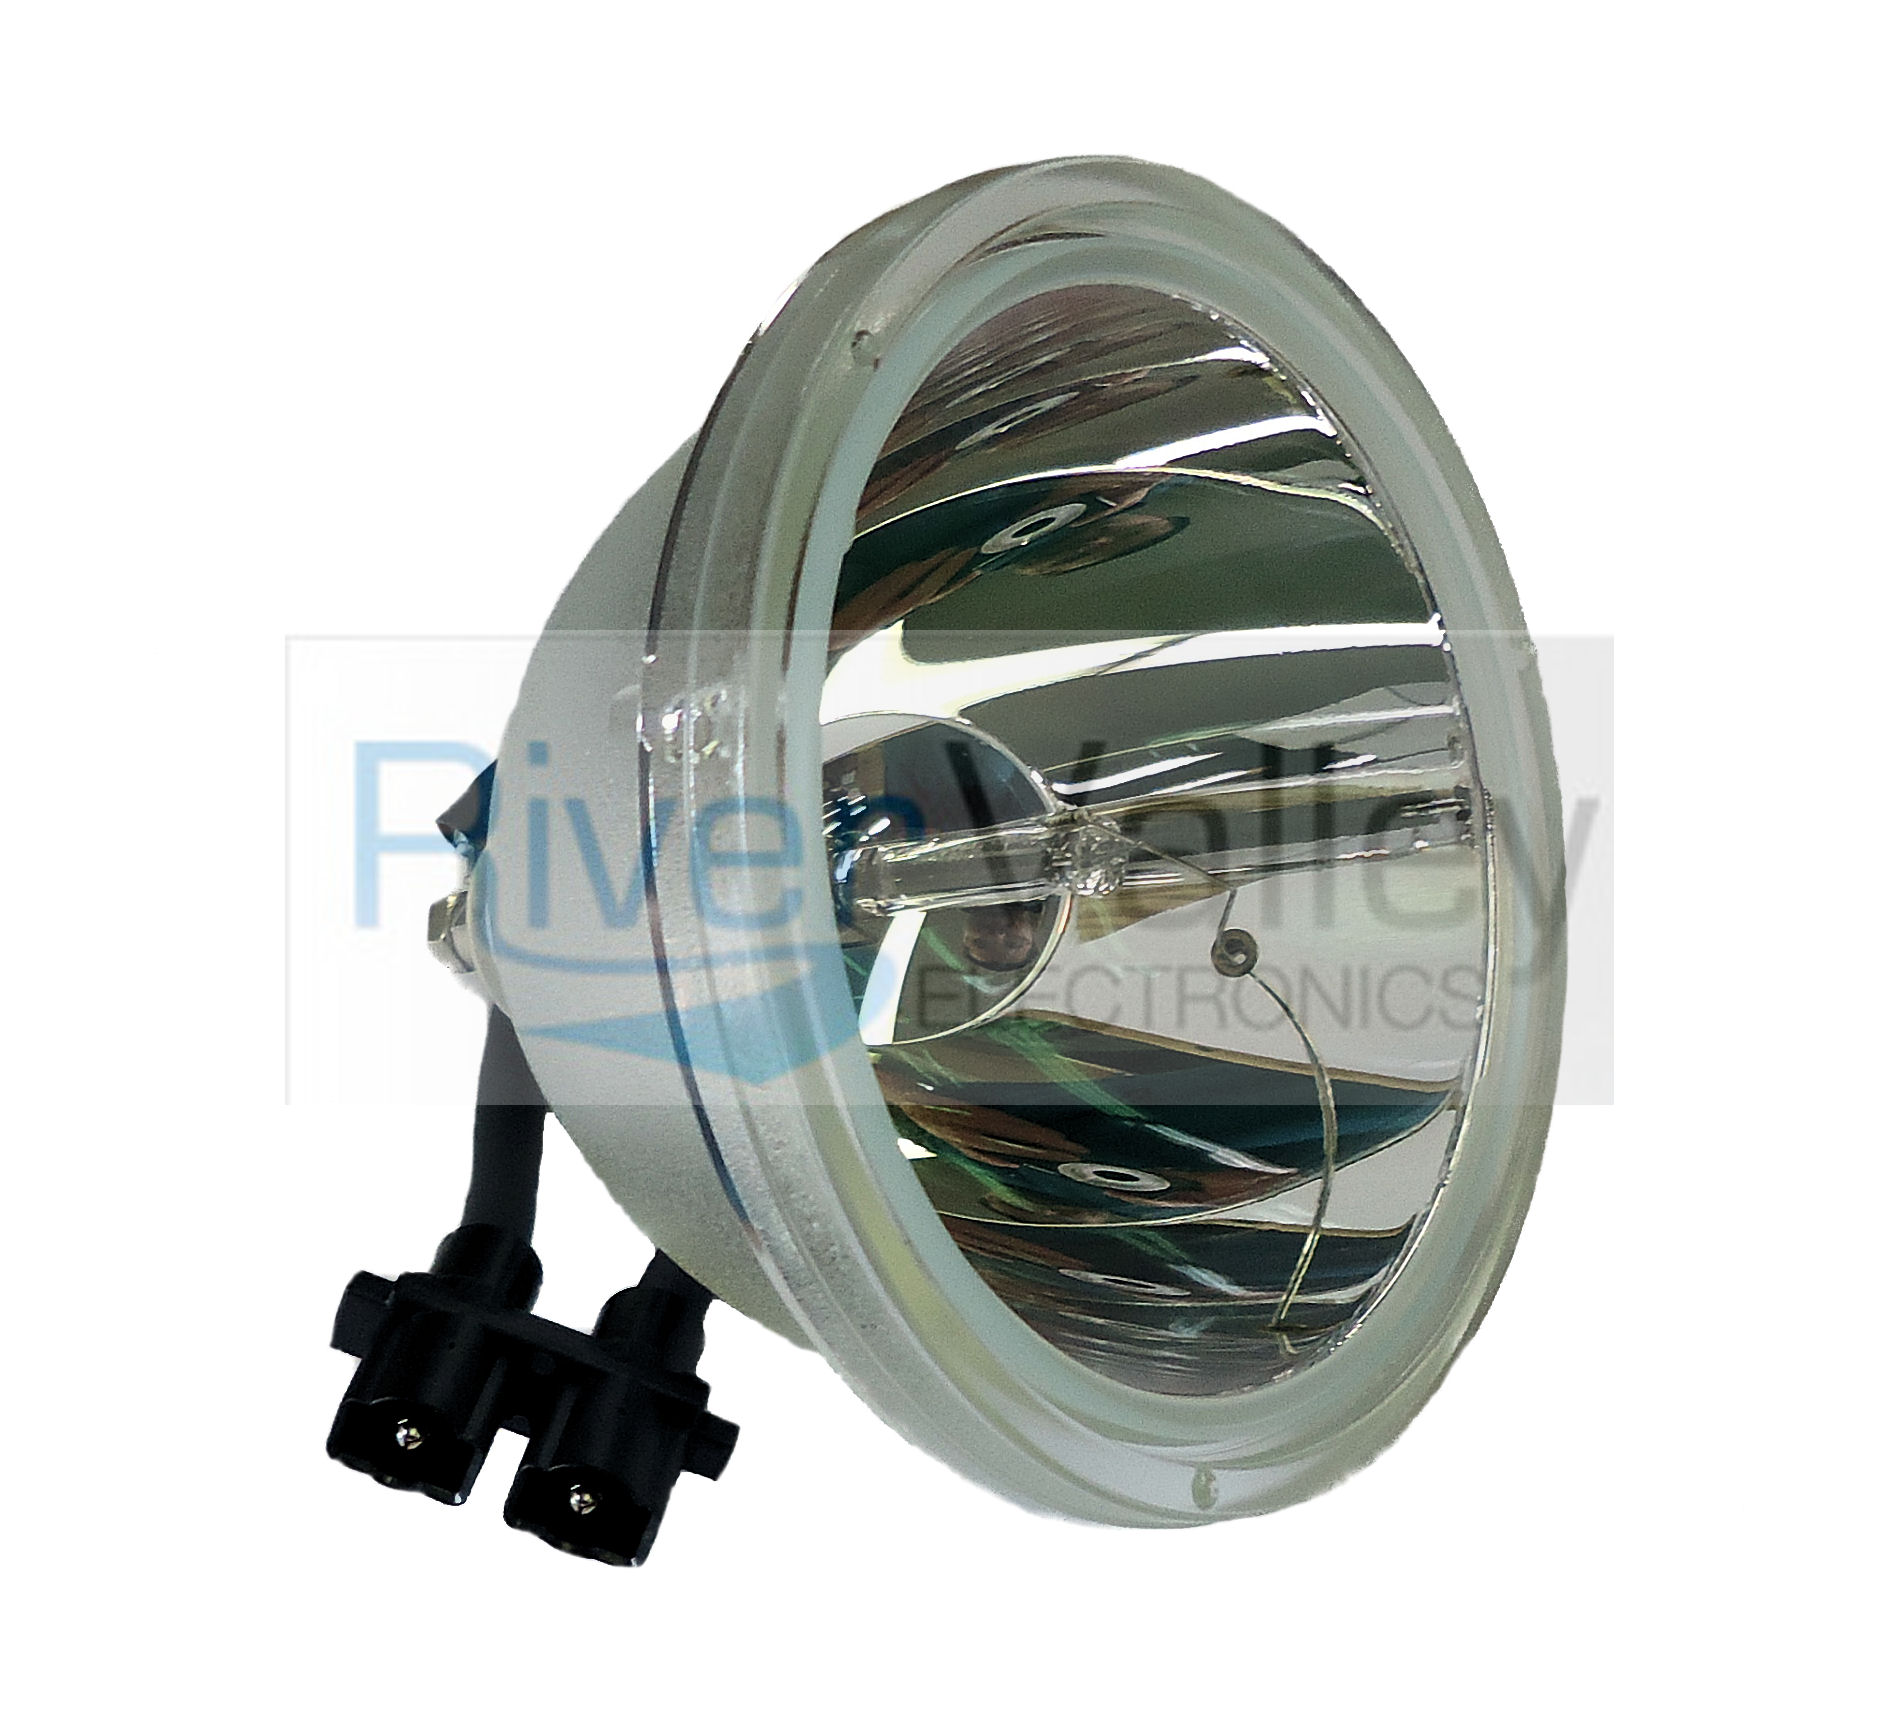 915p026010 915p026a10 tv lamp bulb for mitsubishi with 1 year warranty. Black Bedroom Furniture Sets. Home Design Ideas